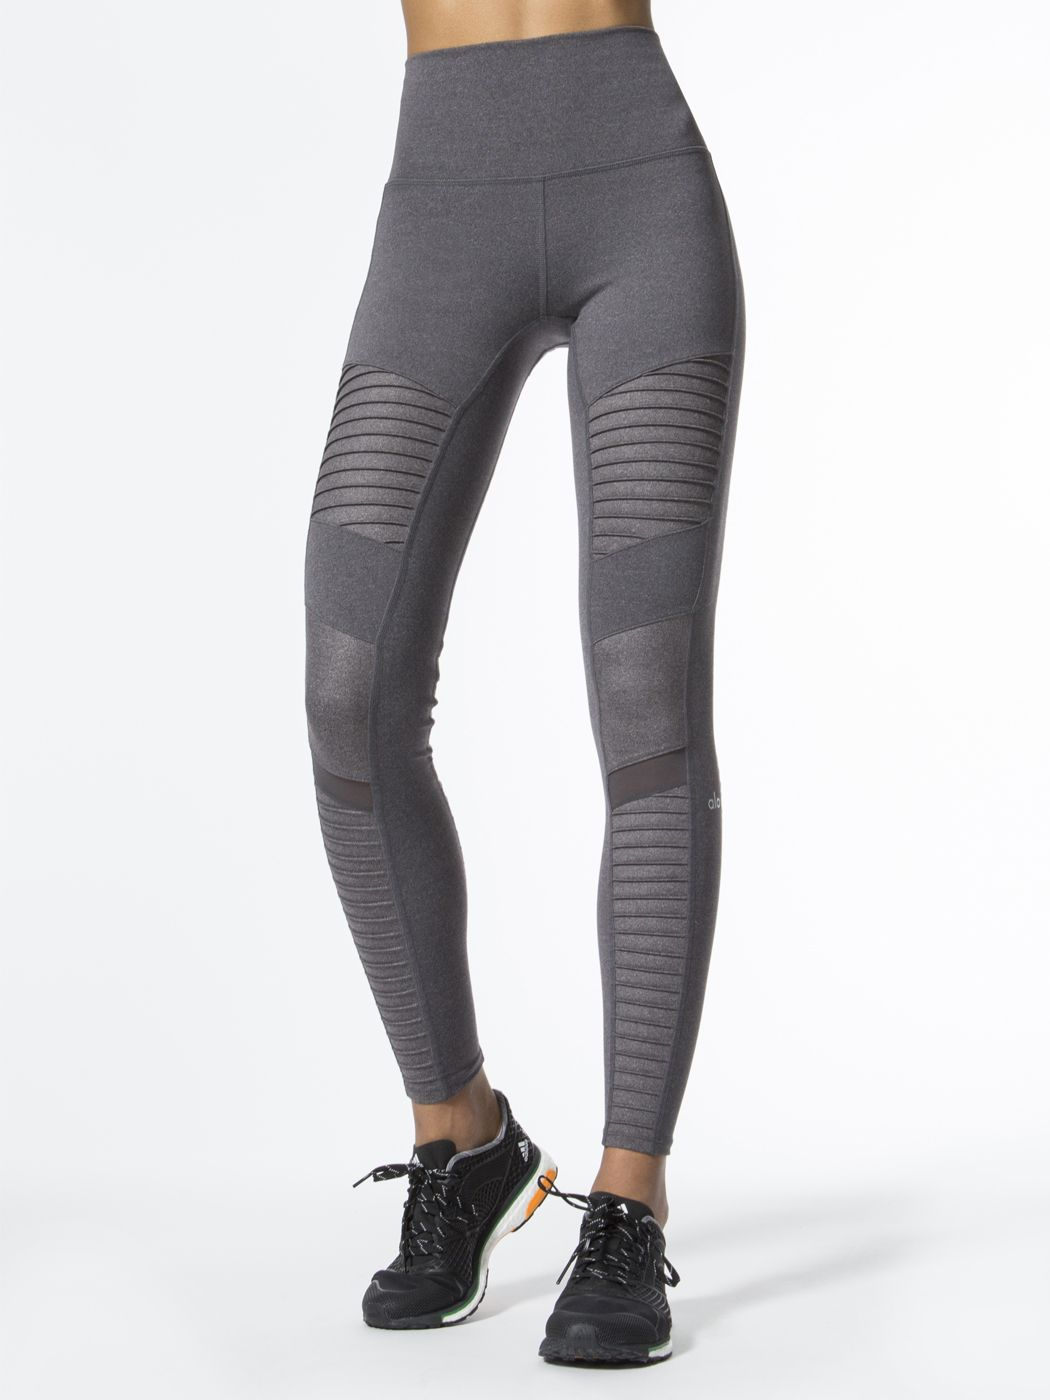 38d07c8e96 High-waist Moto Leggings in Stormy Heather/stormy Heather Glossy by Alo Yoga  from Carbon38